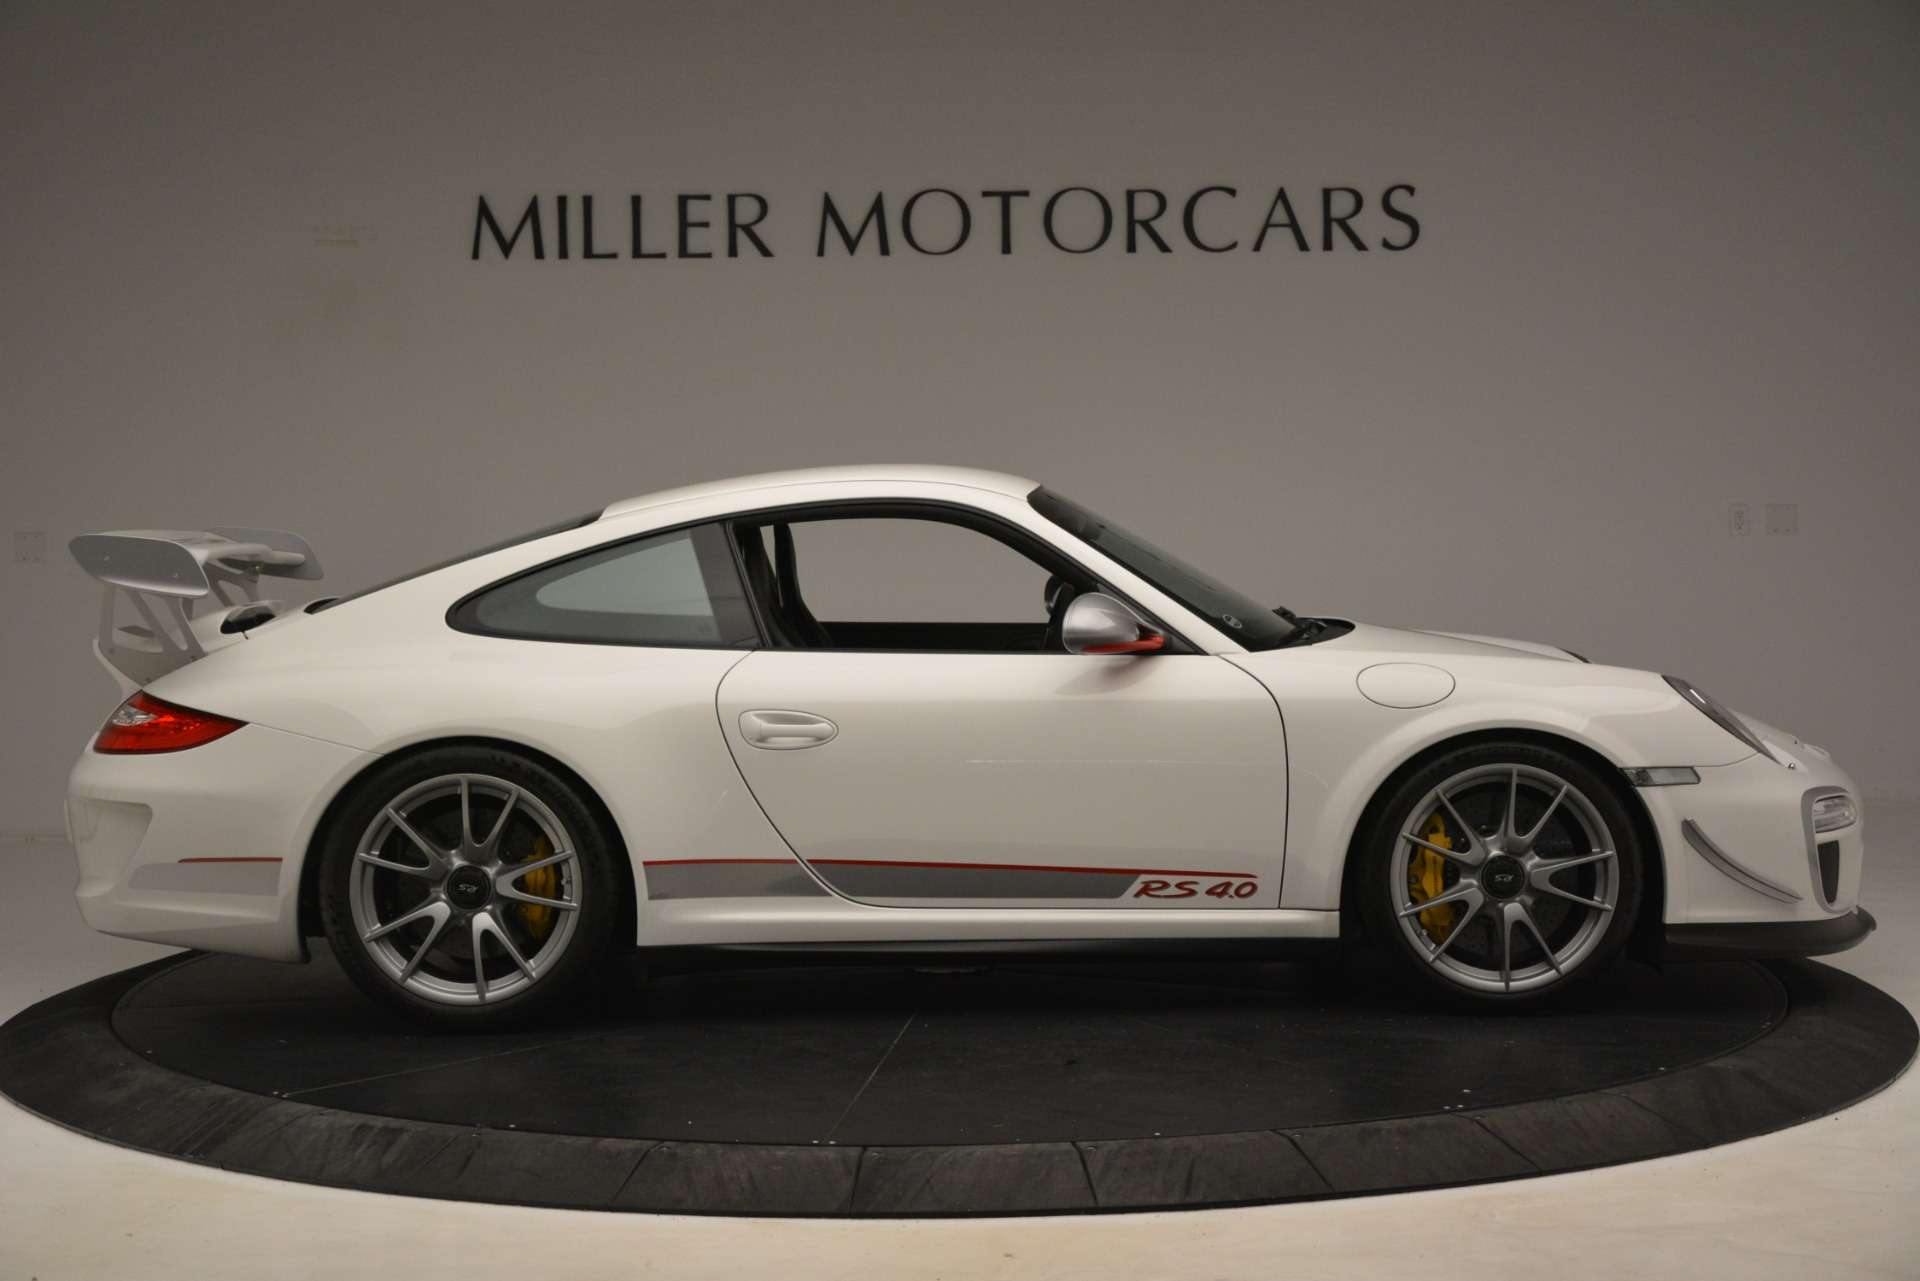 Used 2011 Porsche 911 GT3 RS 4.0 For Sale In Westport, CT 3188_p10